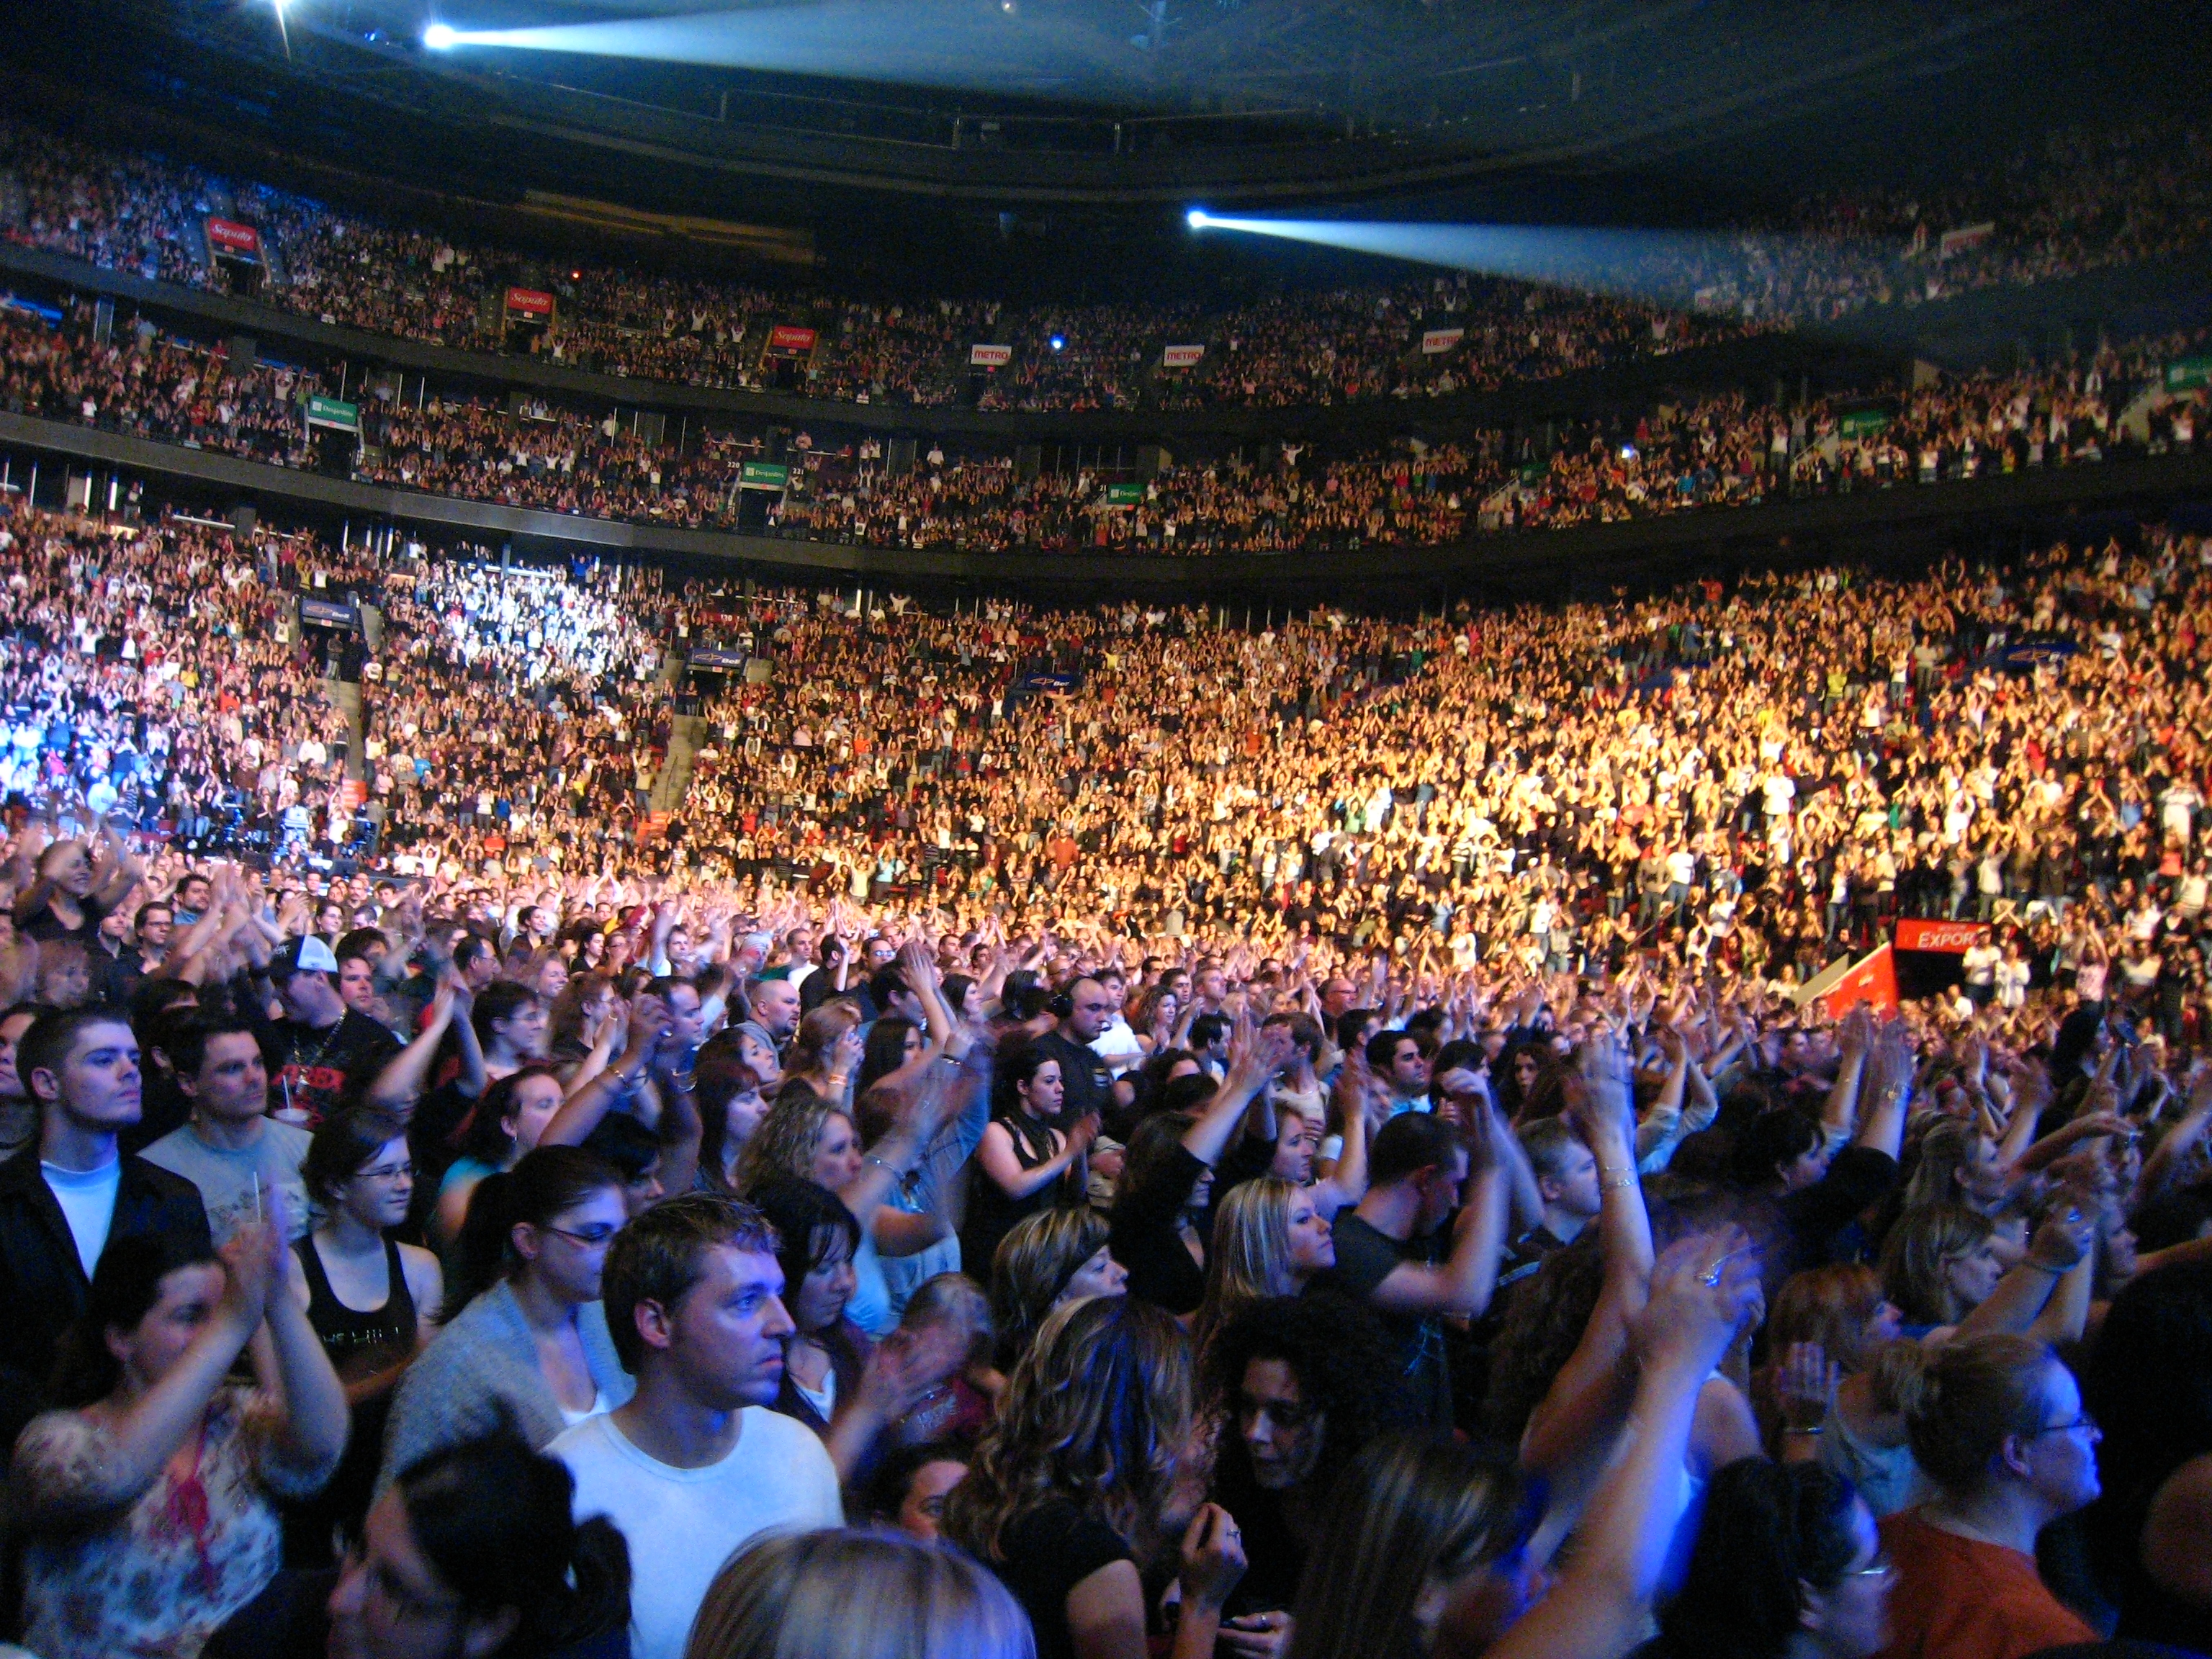 Bon Jovi Concert The Crowd 14000 And Counting Bell